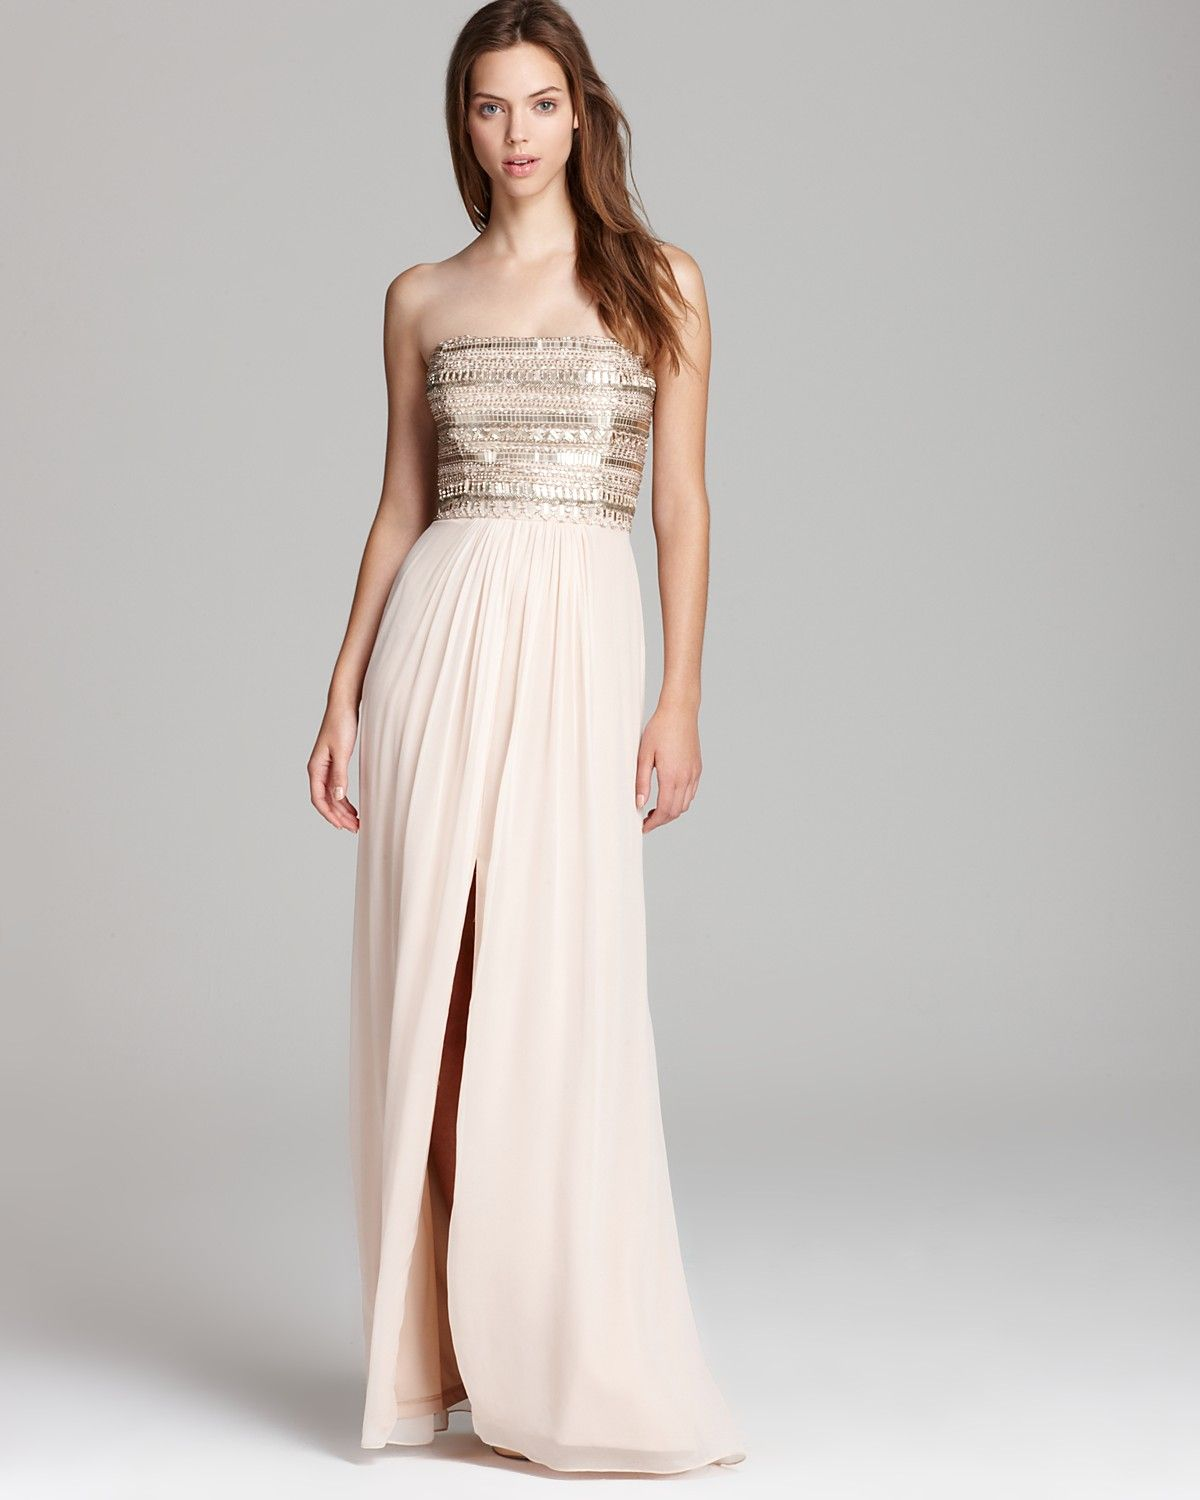 Aidan mattox strapless gown beaded bodice bloomingdales aidan mattox strapless gown beaded bodice bloomingdales ombrellifo Gallery